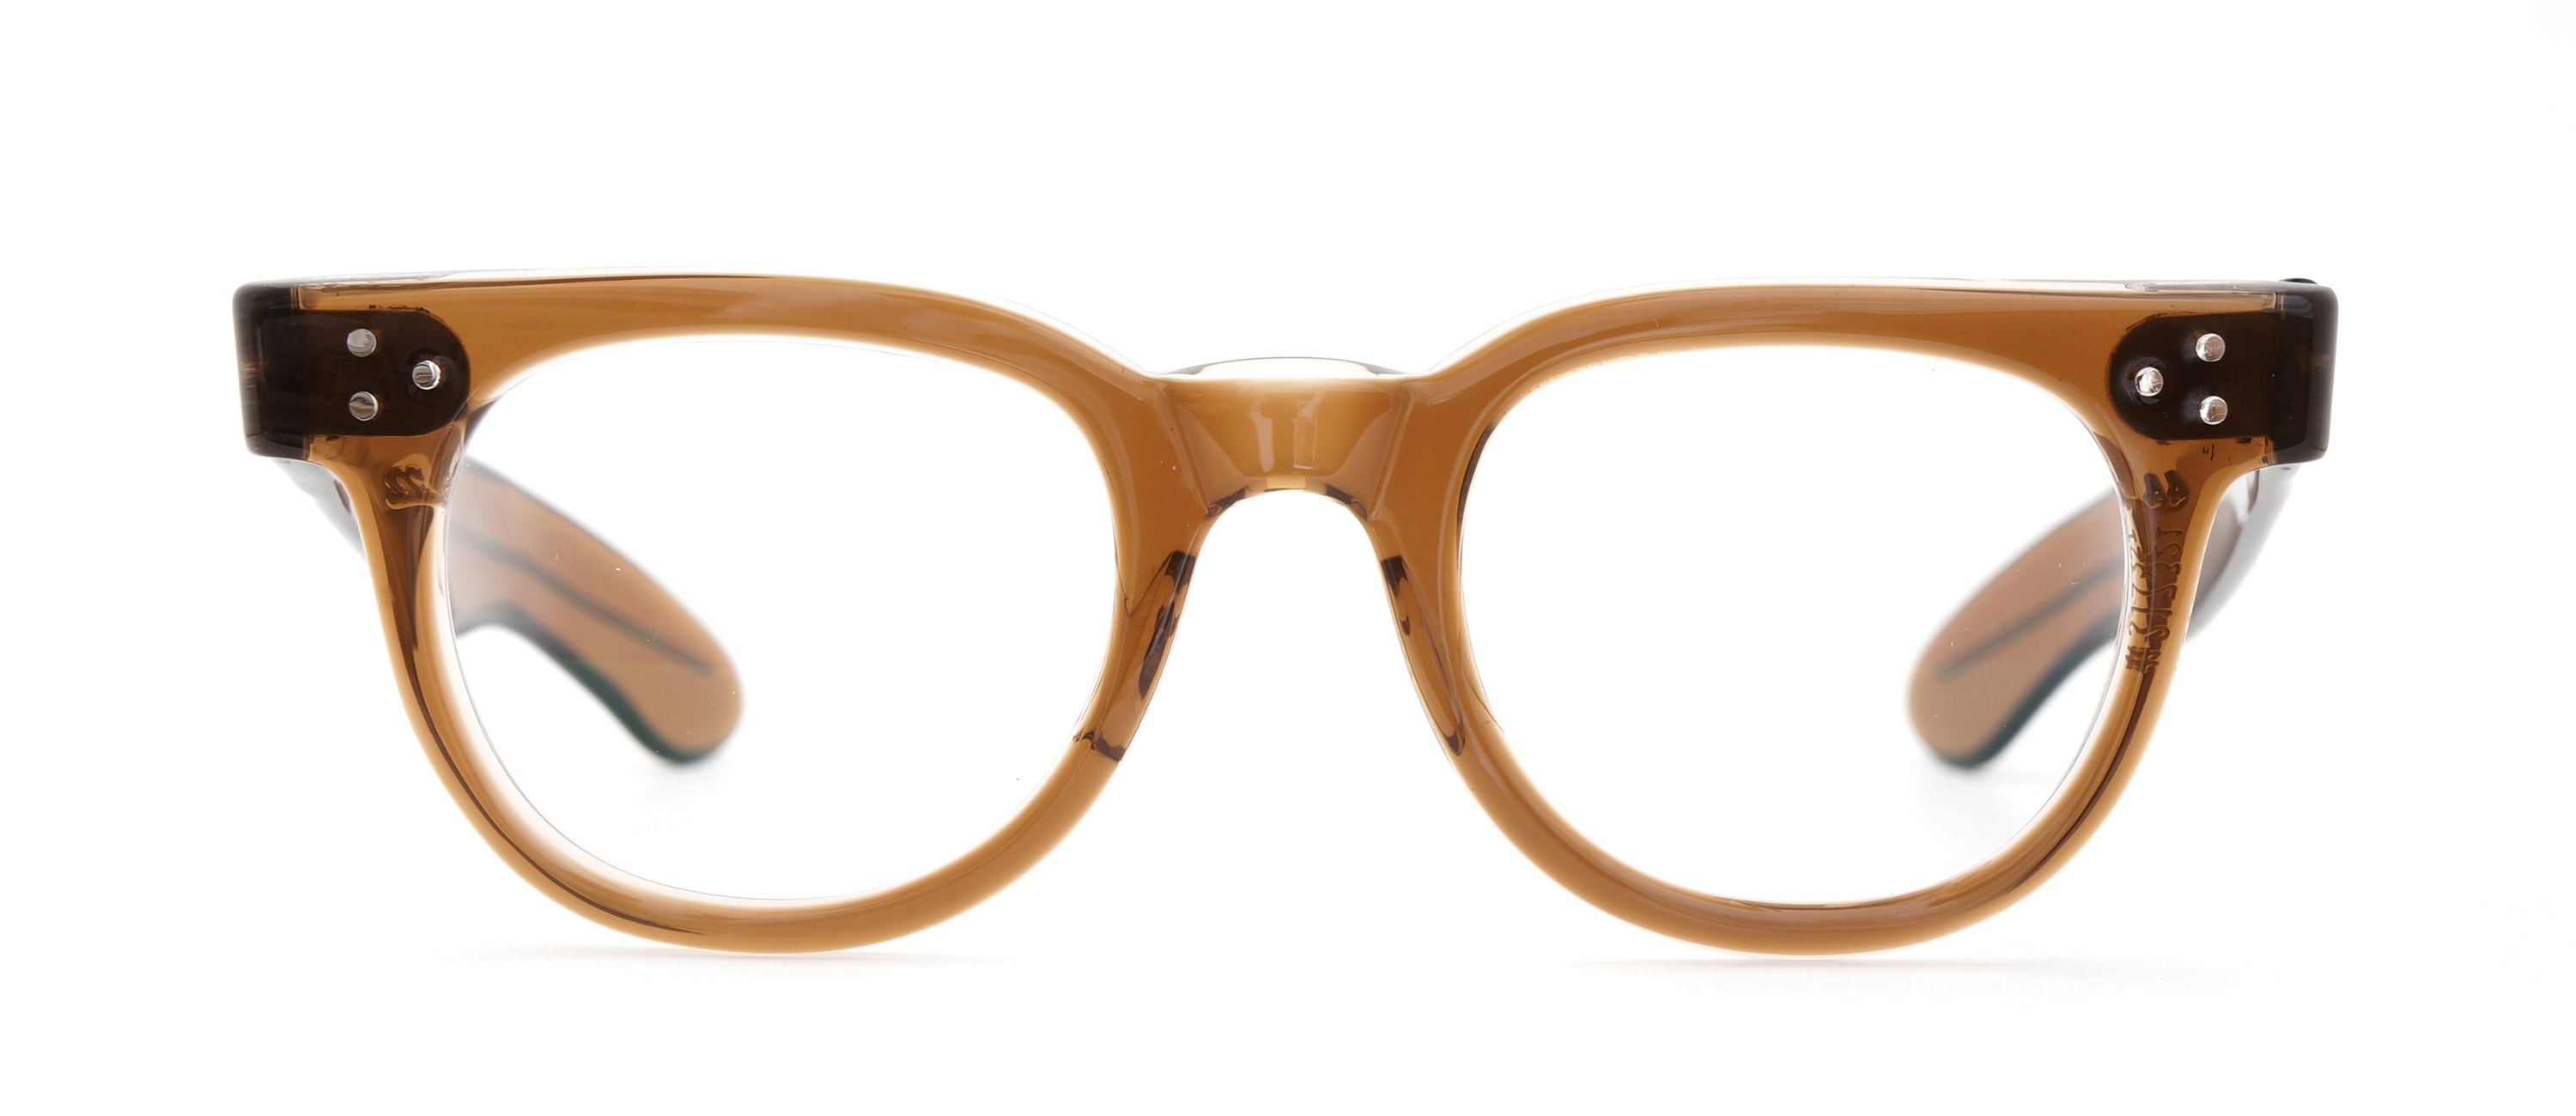 The Spectacle メガネ 1950s-70s TART OPTICAL FDR (FRAME USA) BROWN 44-22 2